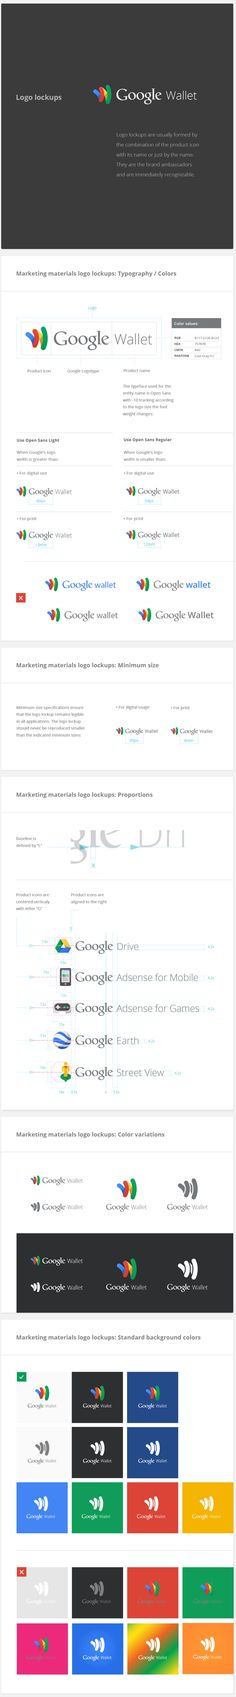 Google Visual Assets Guidelines 03